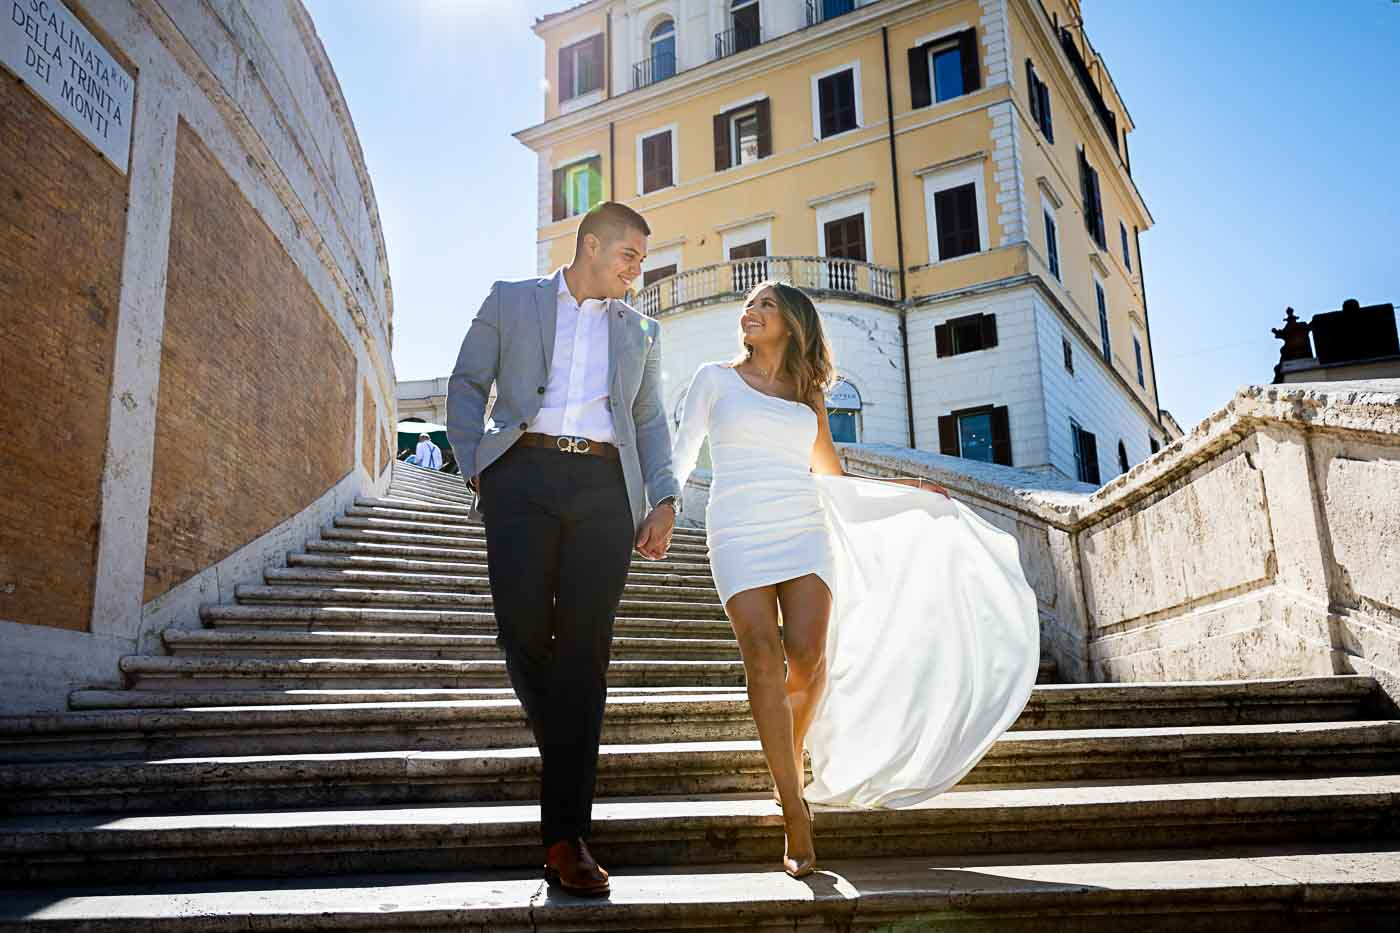 Couple photography in Rome while walking down the spanish steps by the Andrea Matone photographer studio